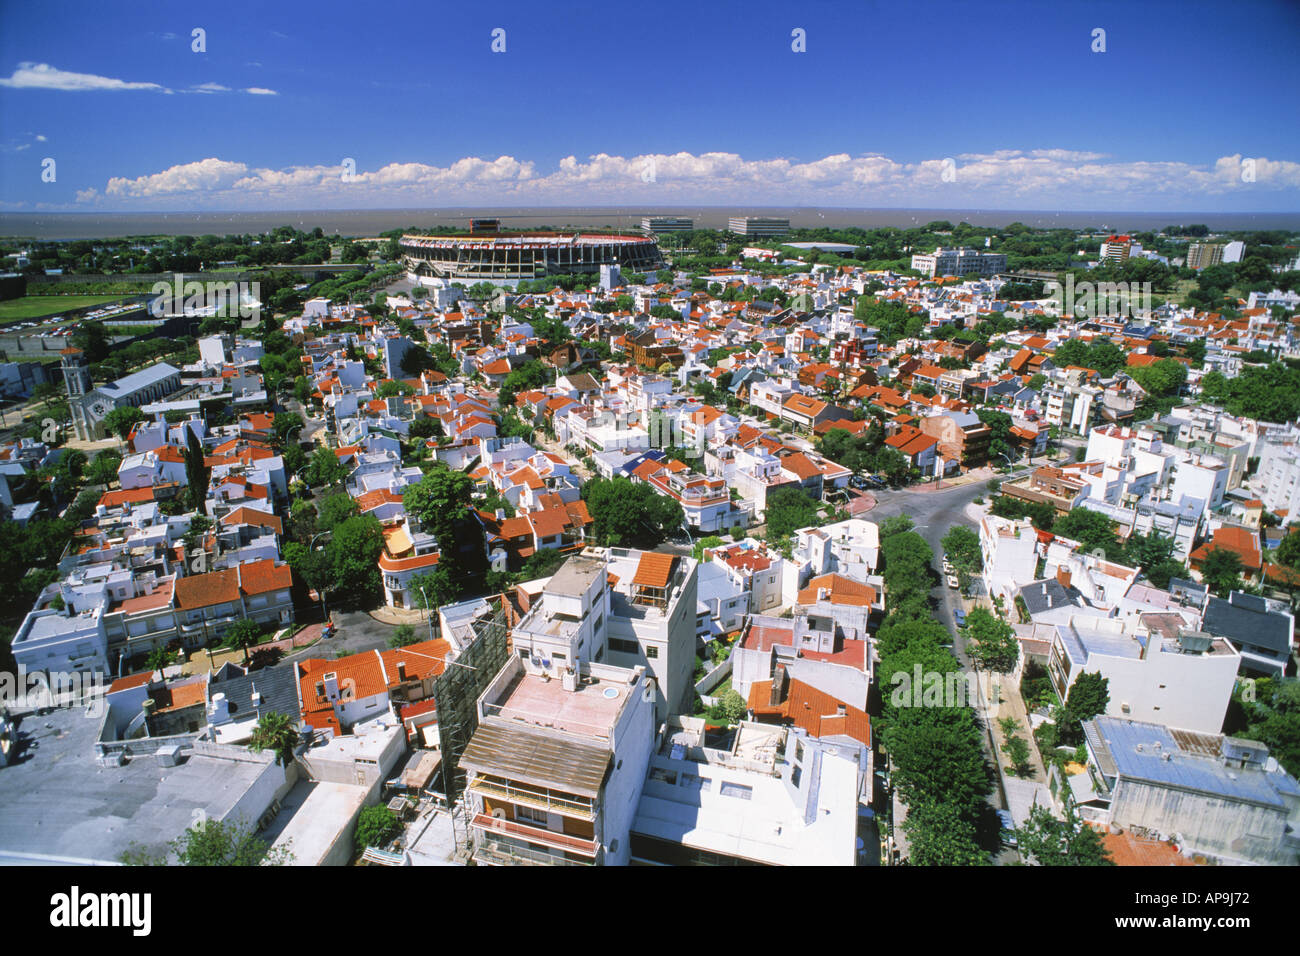 Overview of white homes in River Plata suburb with Stadium in Buenos Aires - Stock Image